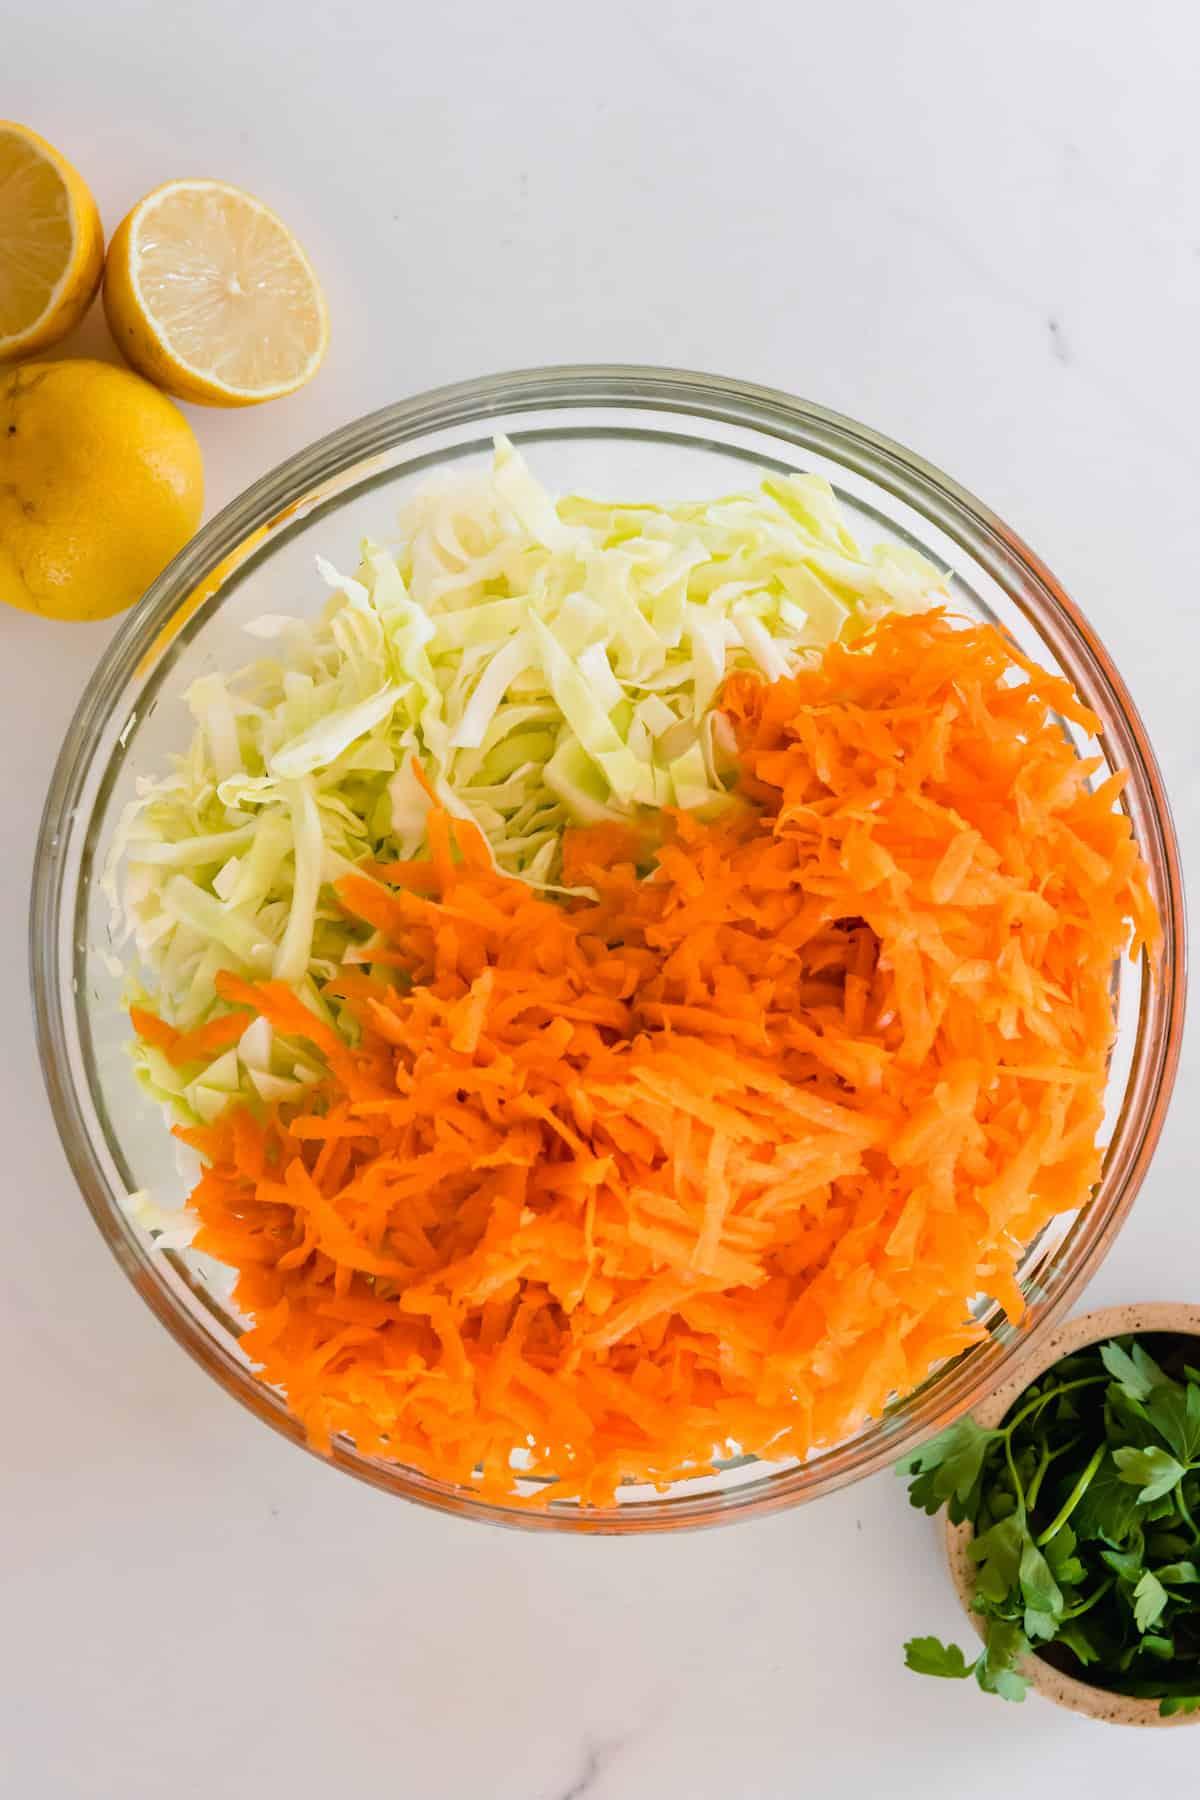 Shredded Carrots and Cabbage in a Big Glass Mixing Bowl